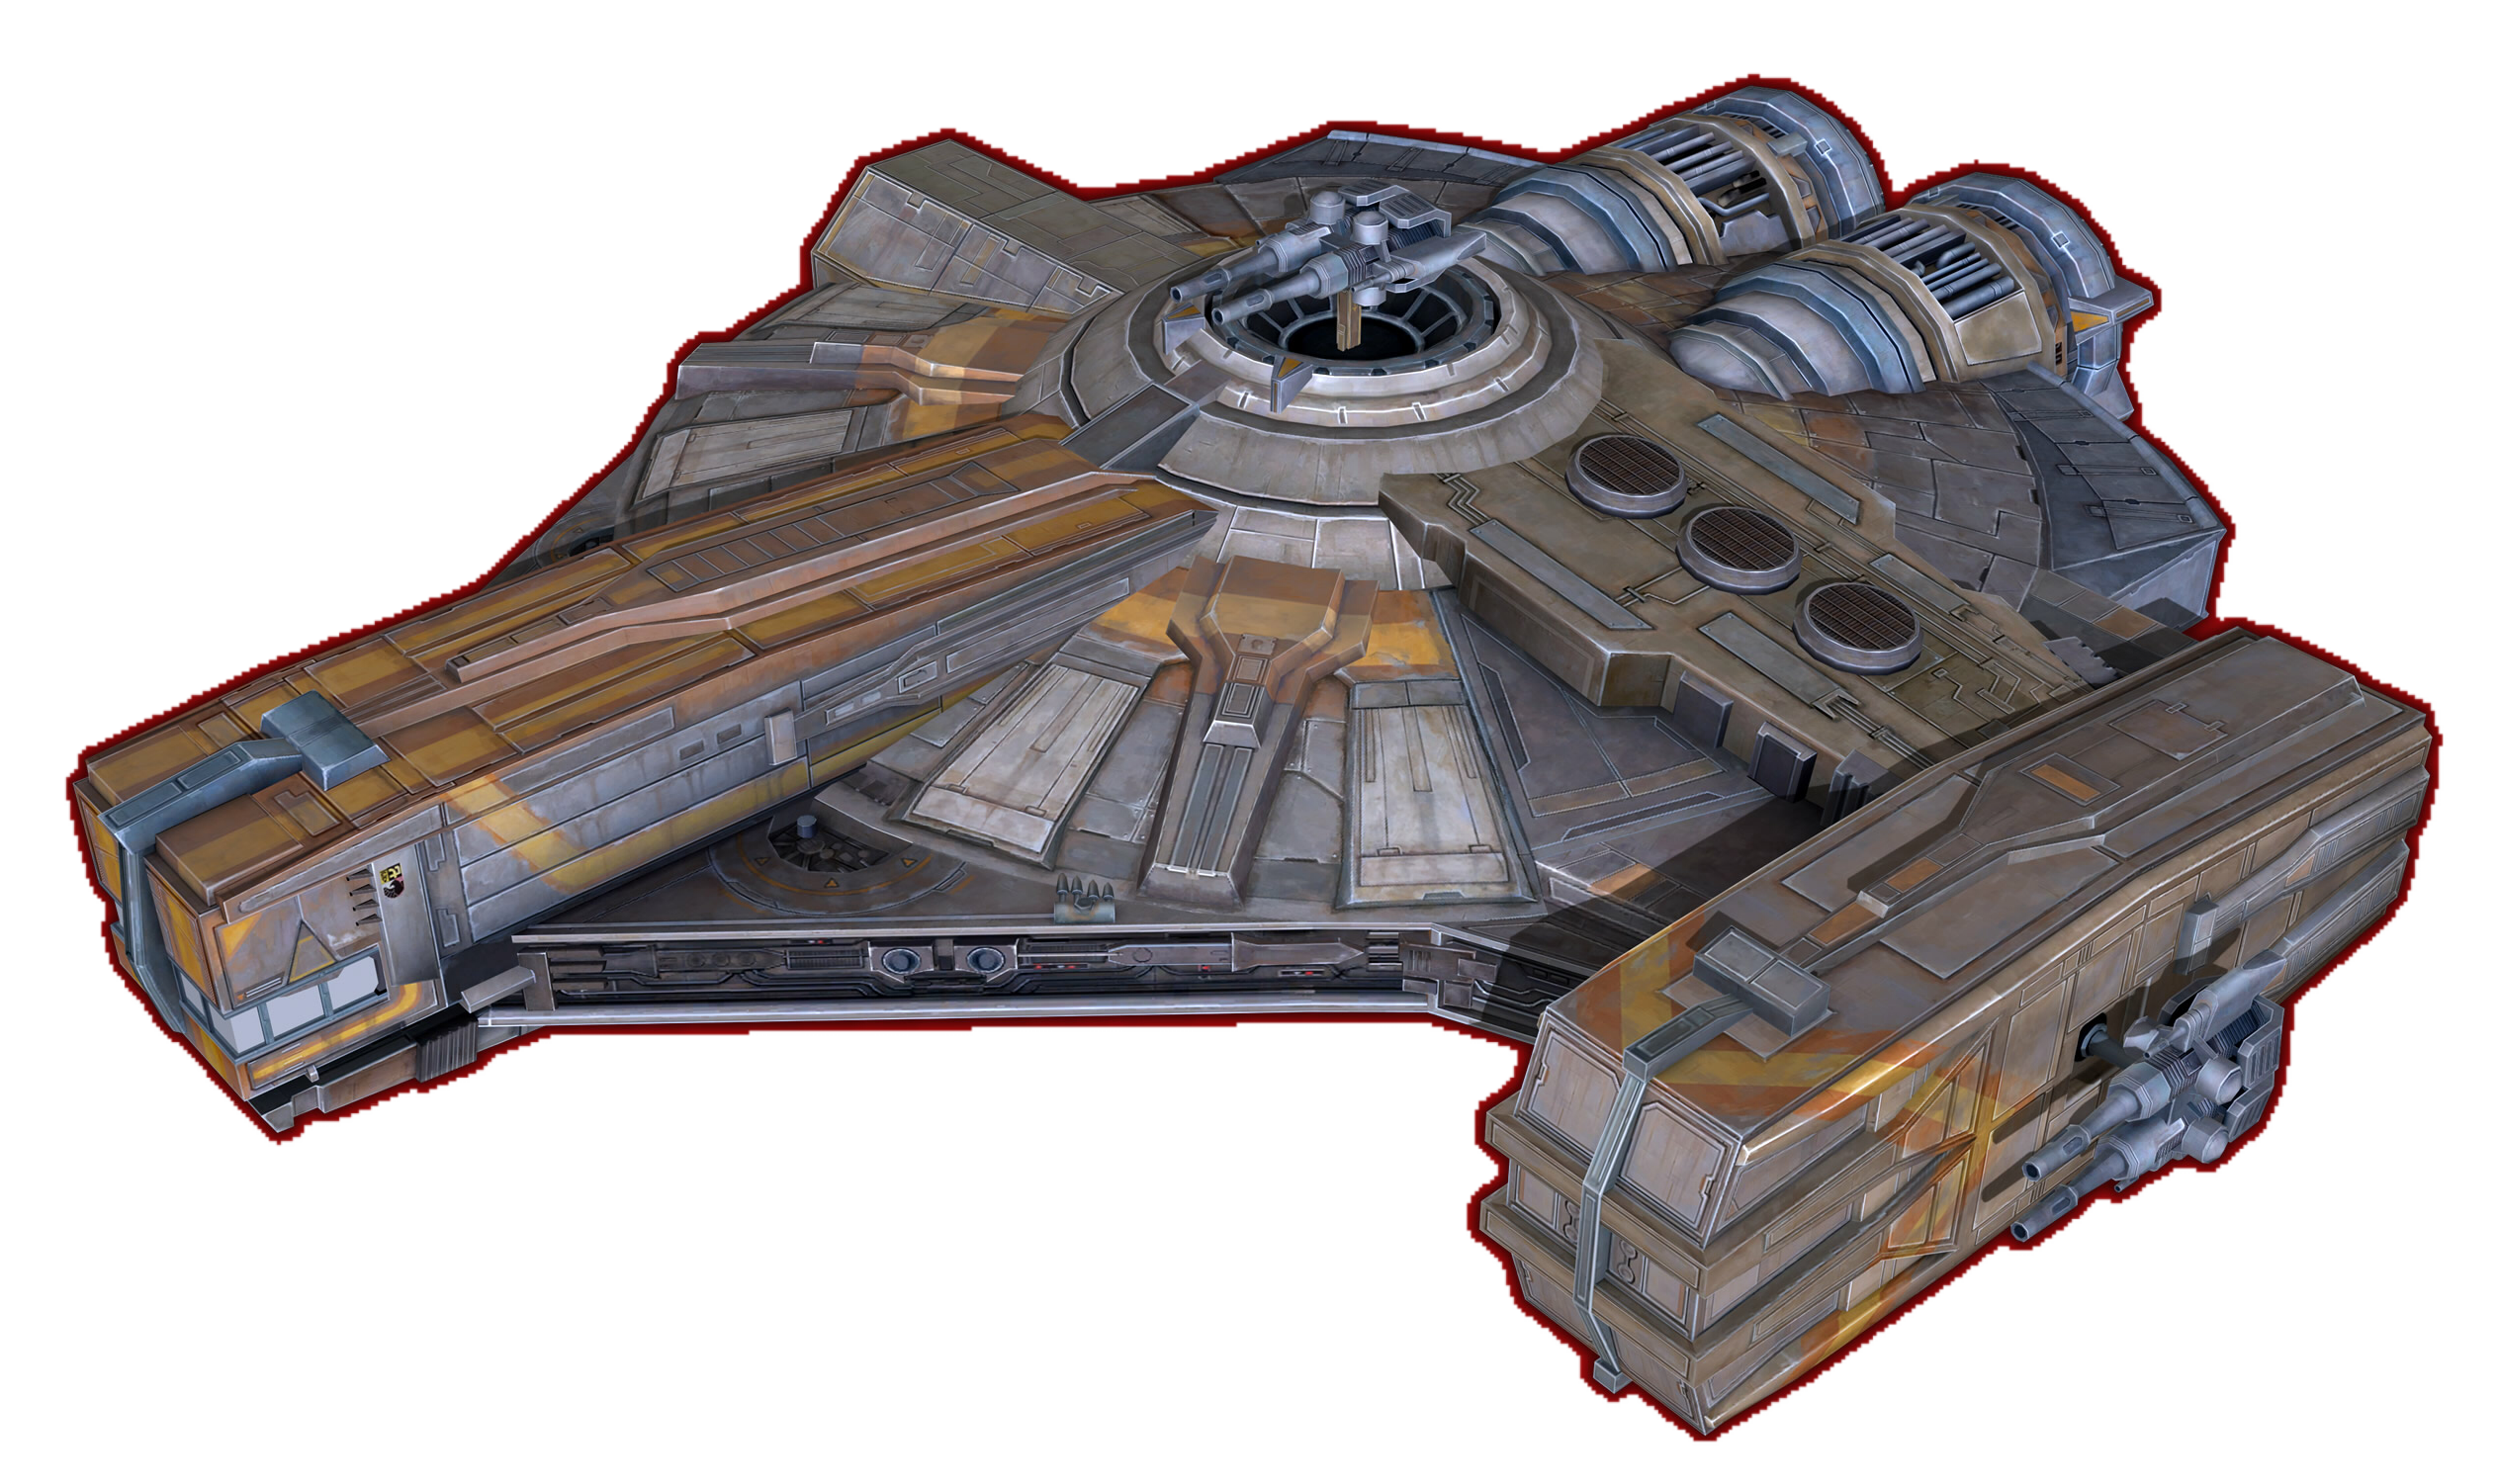 Cec Xs Freighter The Same Model As The Ebon Hawk During The Jedi Civil War Jedi Civil War Star Wars Rpg Star Wars Starting march 8th, ebon hawk blueprints will be available as a bonus reward on all fleet battles nodes for a limited time! ebon hawk during the jedi civil war